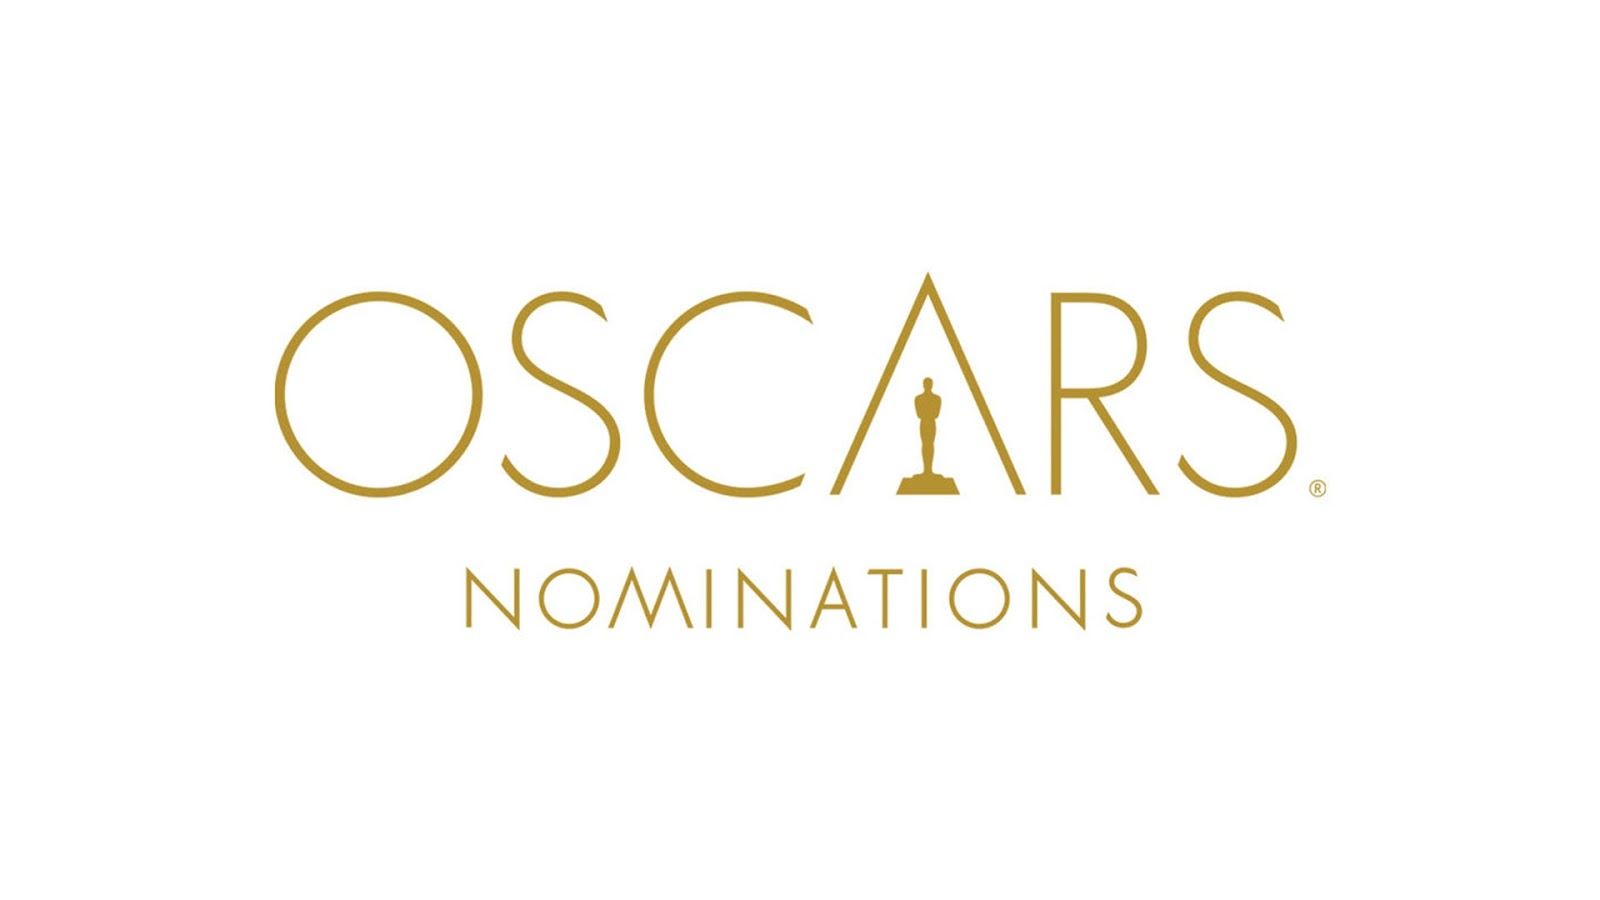 Full winners list of Oscars 2017 results Academy Awards 89th Annual